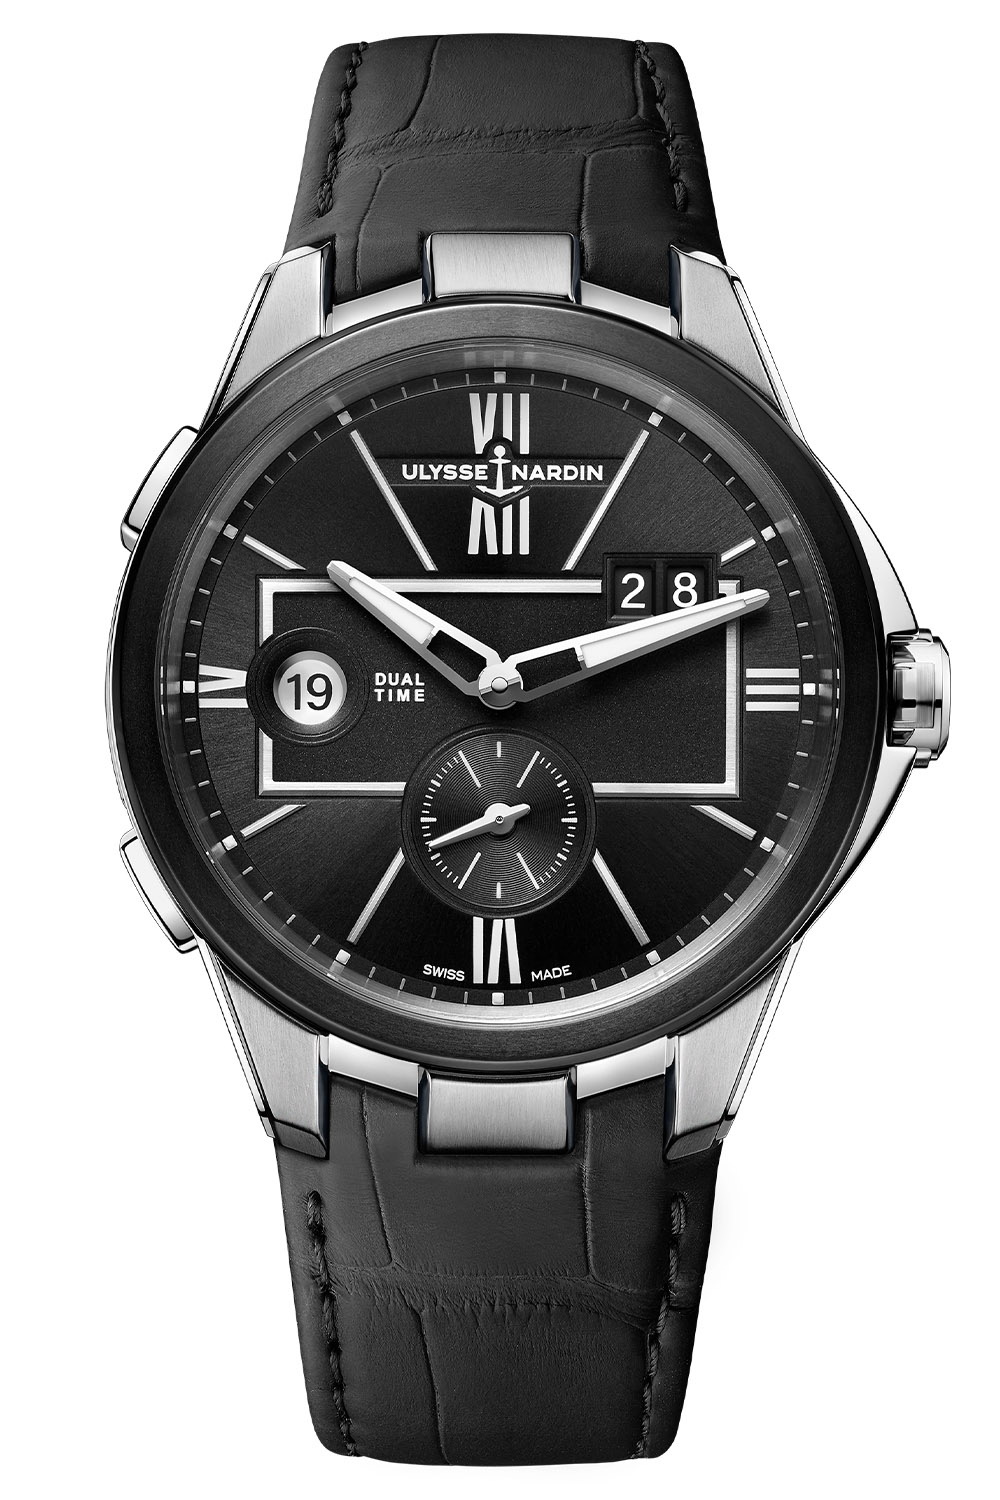 Ulysse Nardin Dual Time 42mm Collection 2020 - 7